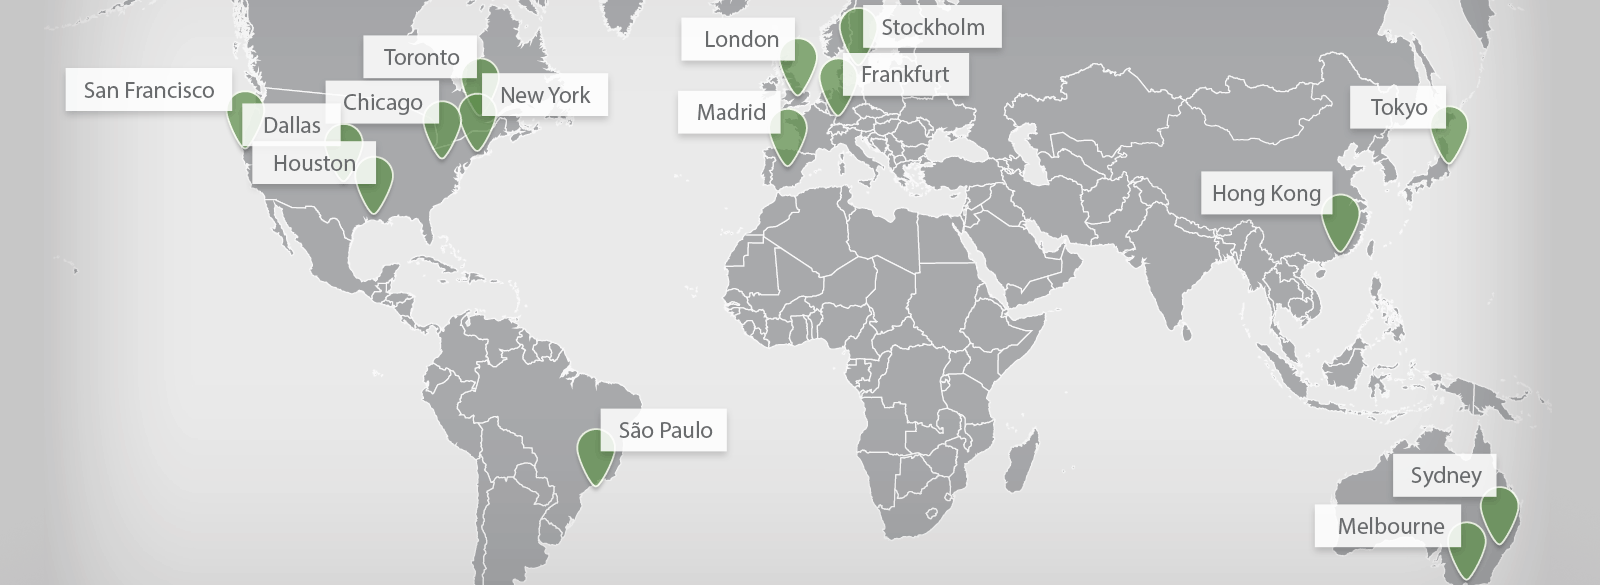 World Map with Greenhill Offices